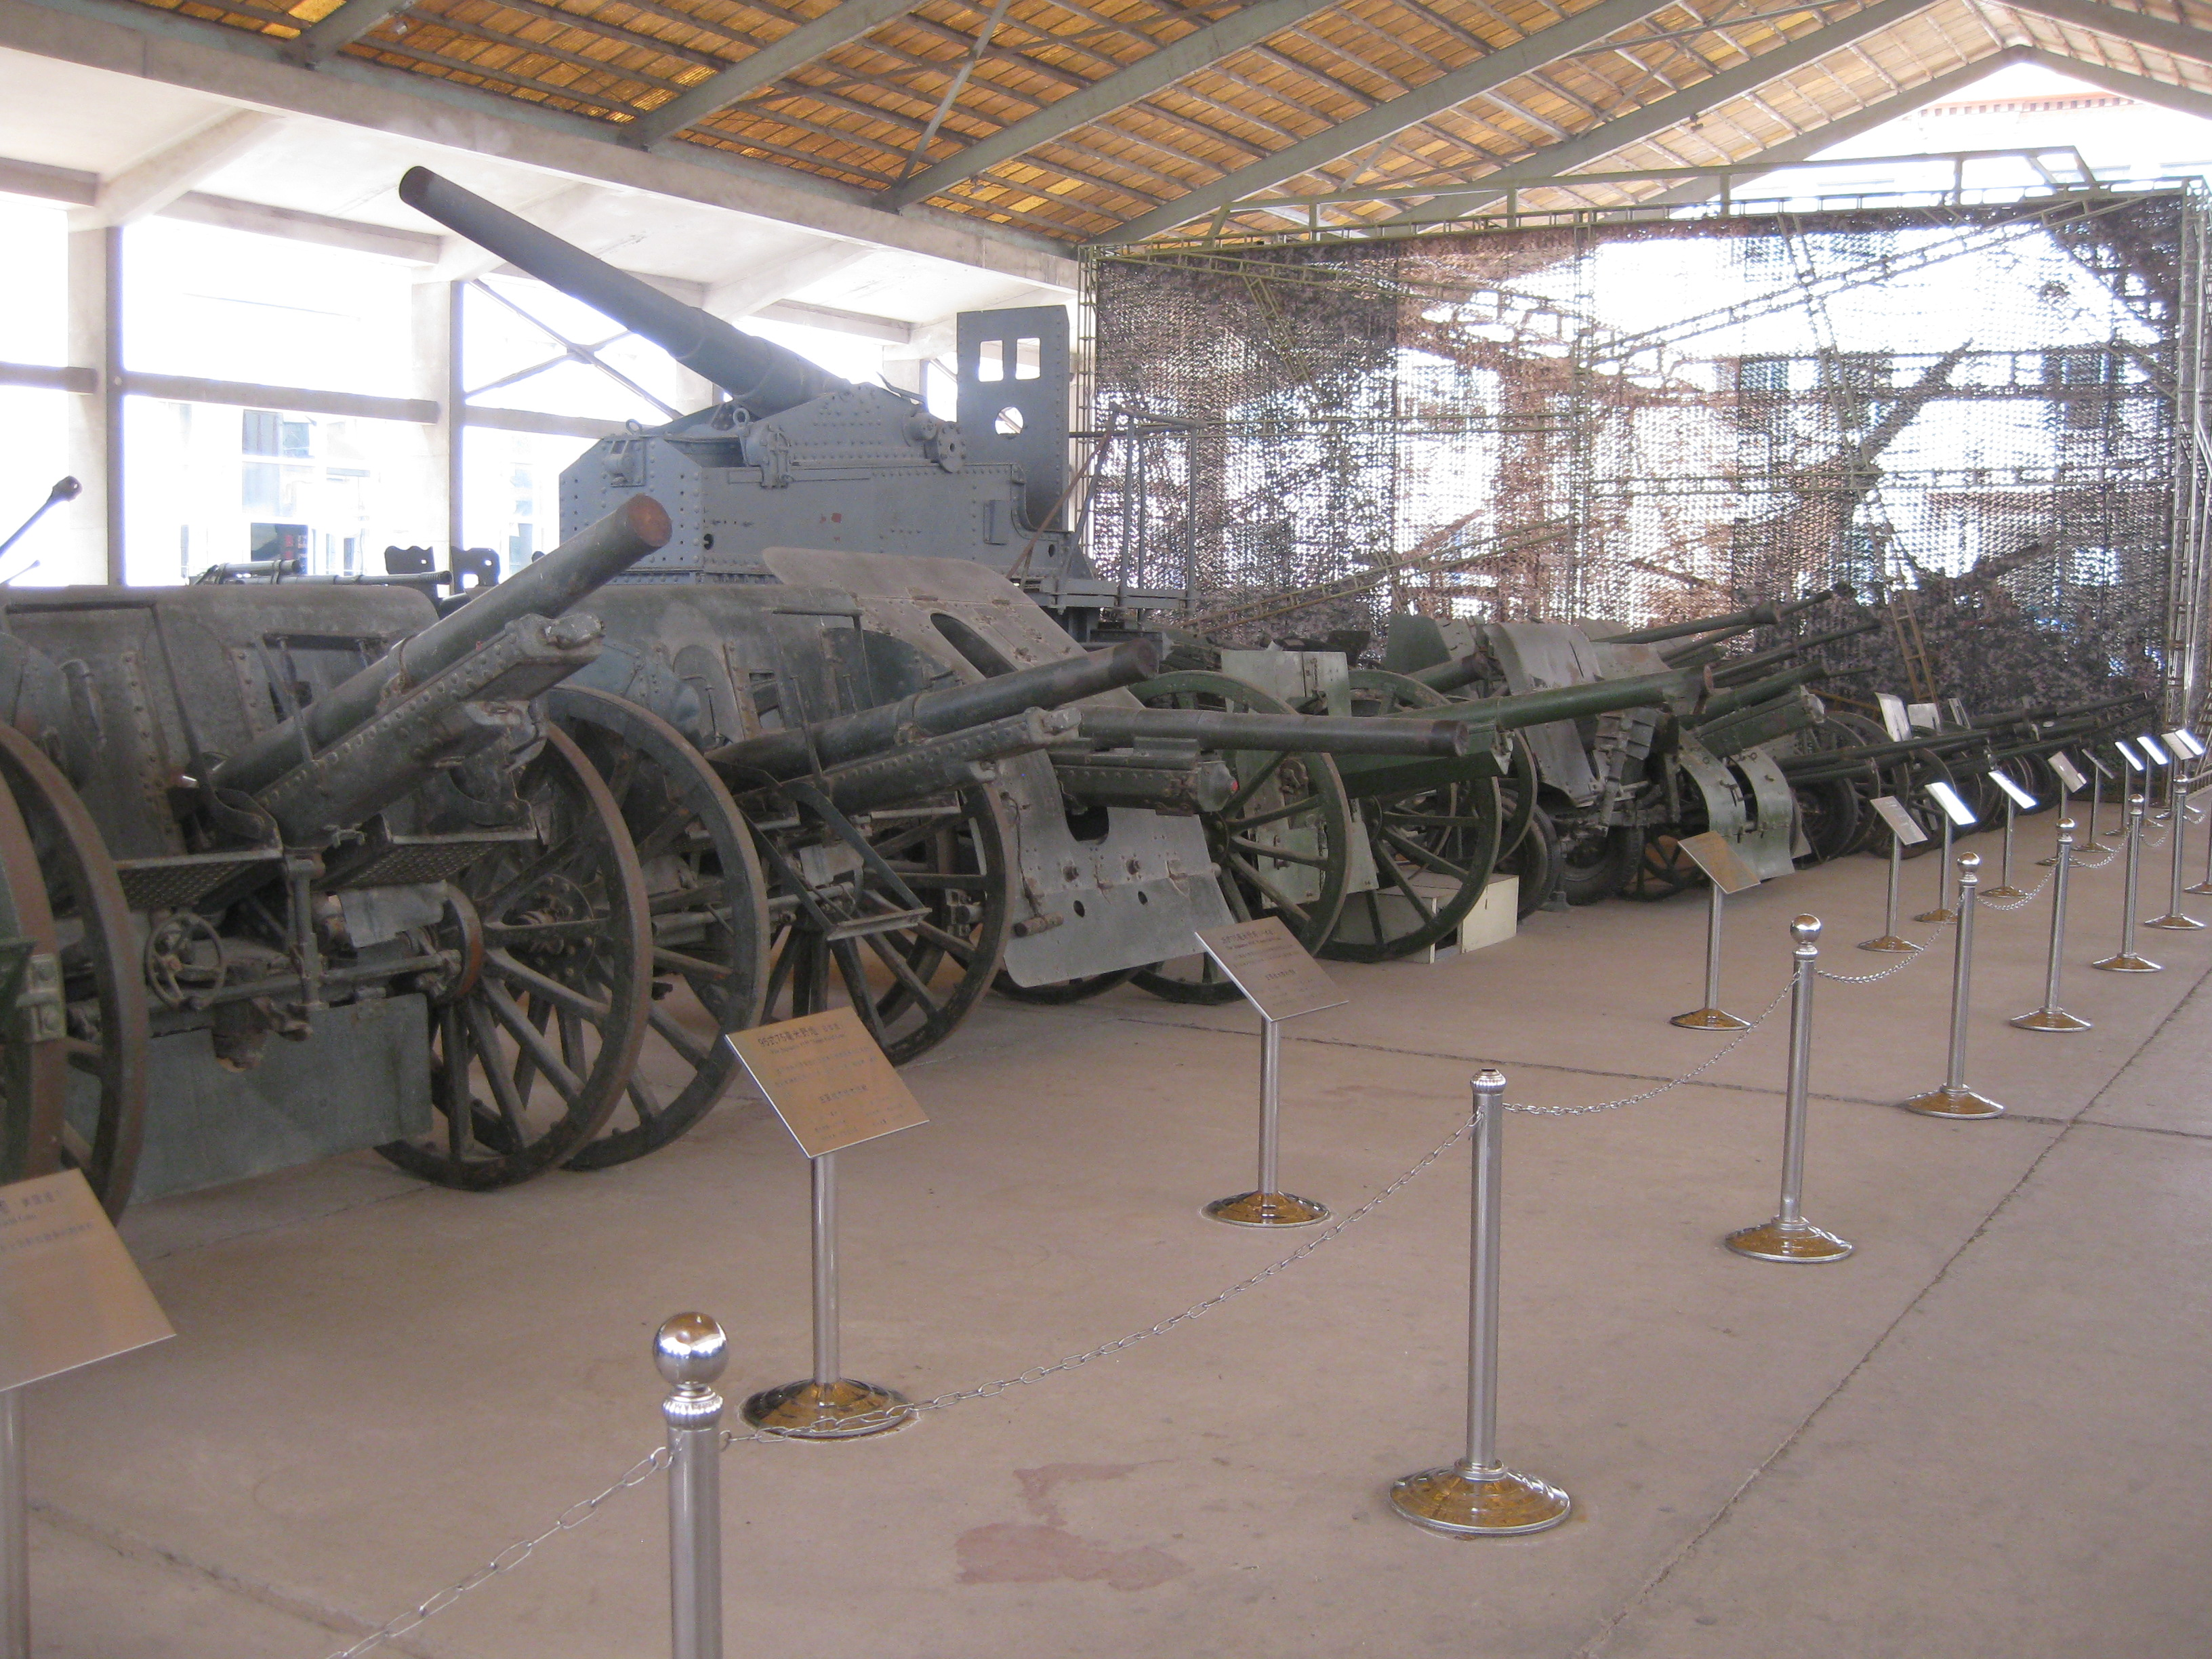 File:Artillery in the Military Museum of the Chinese ...